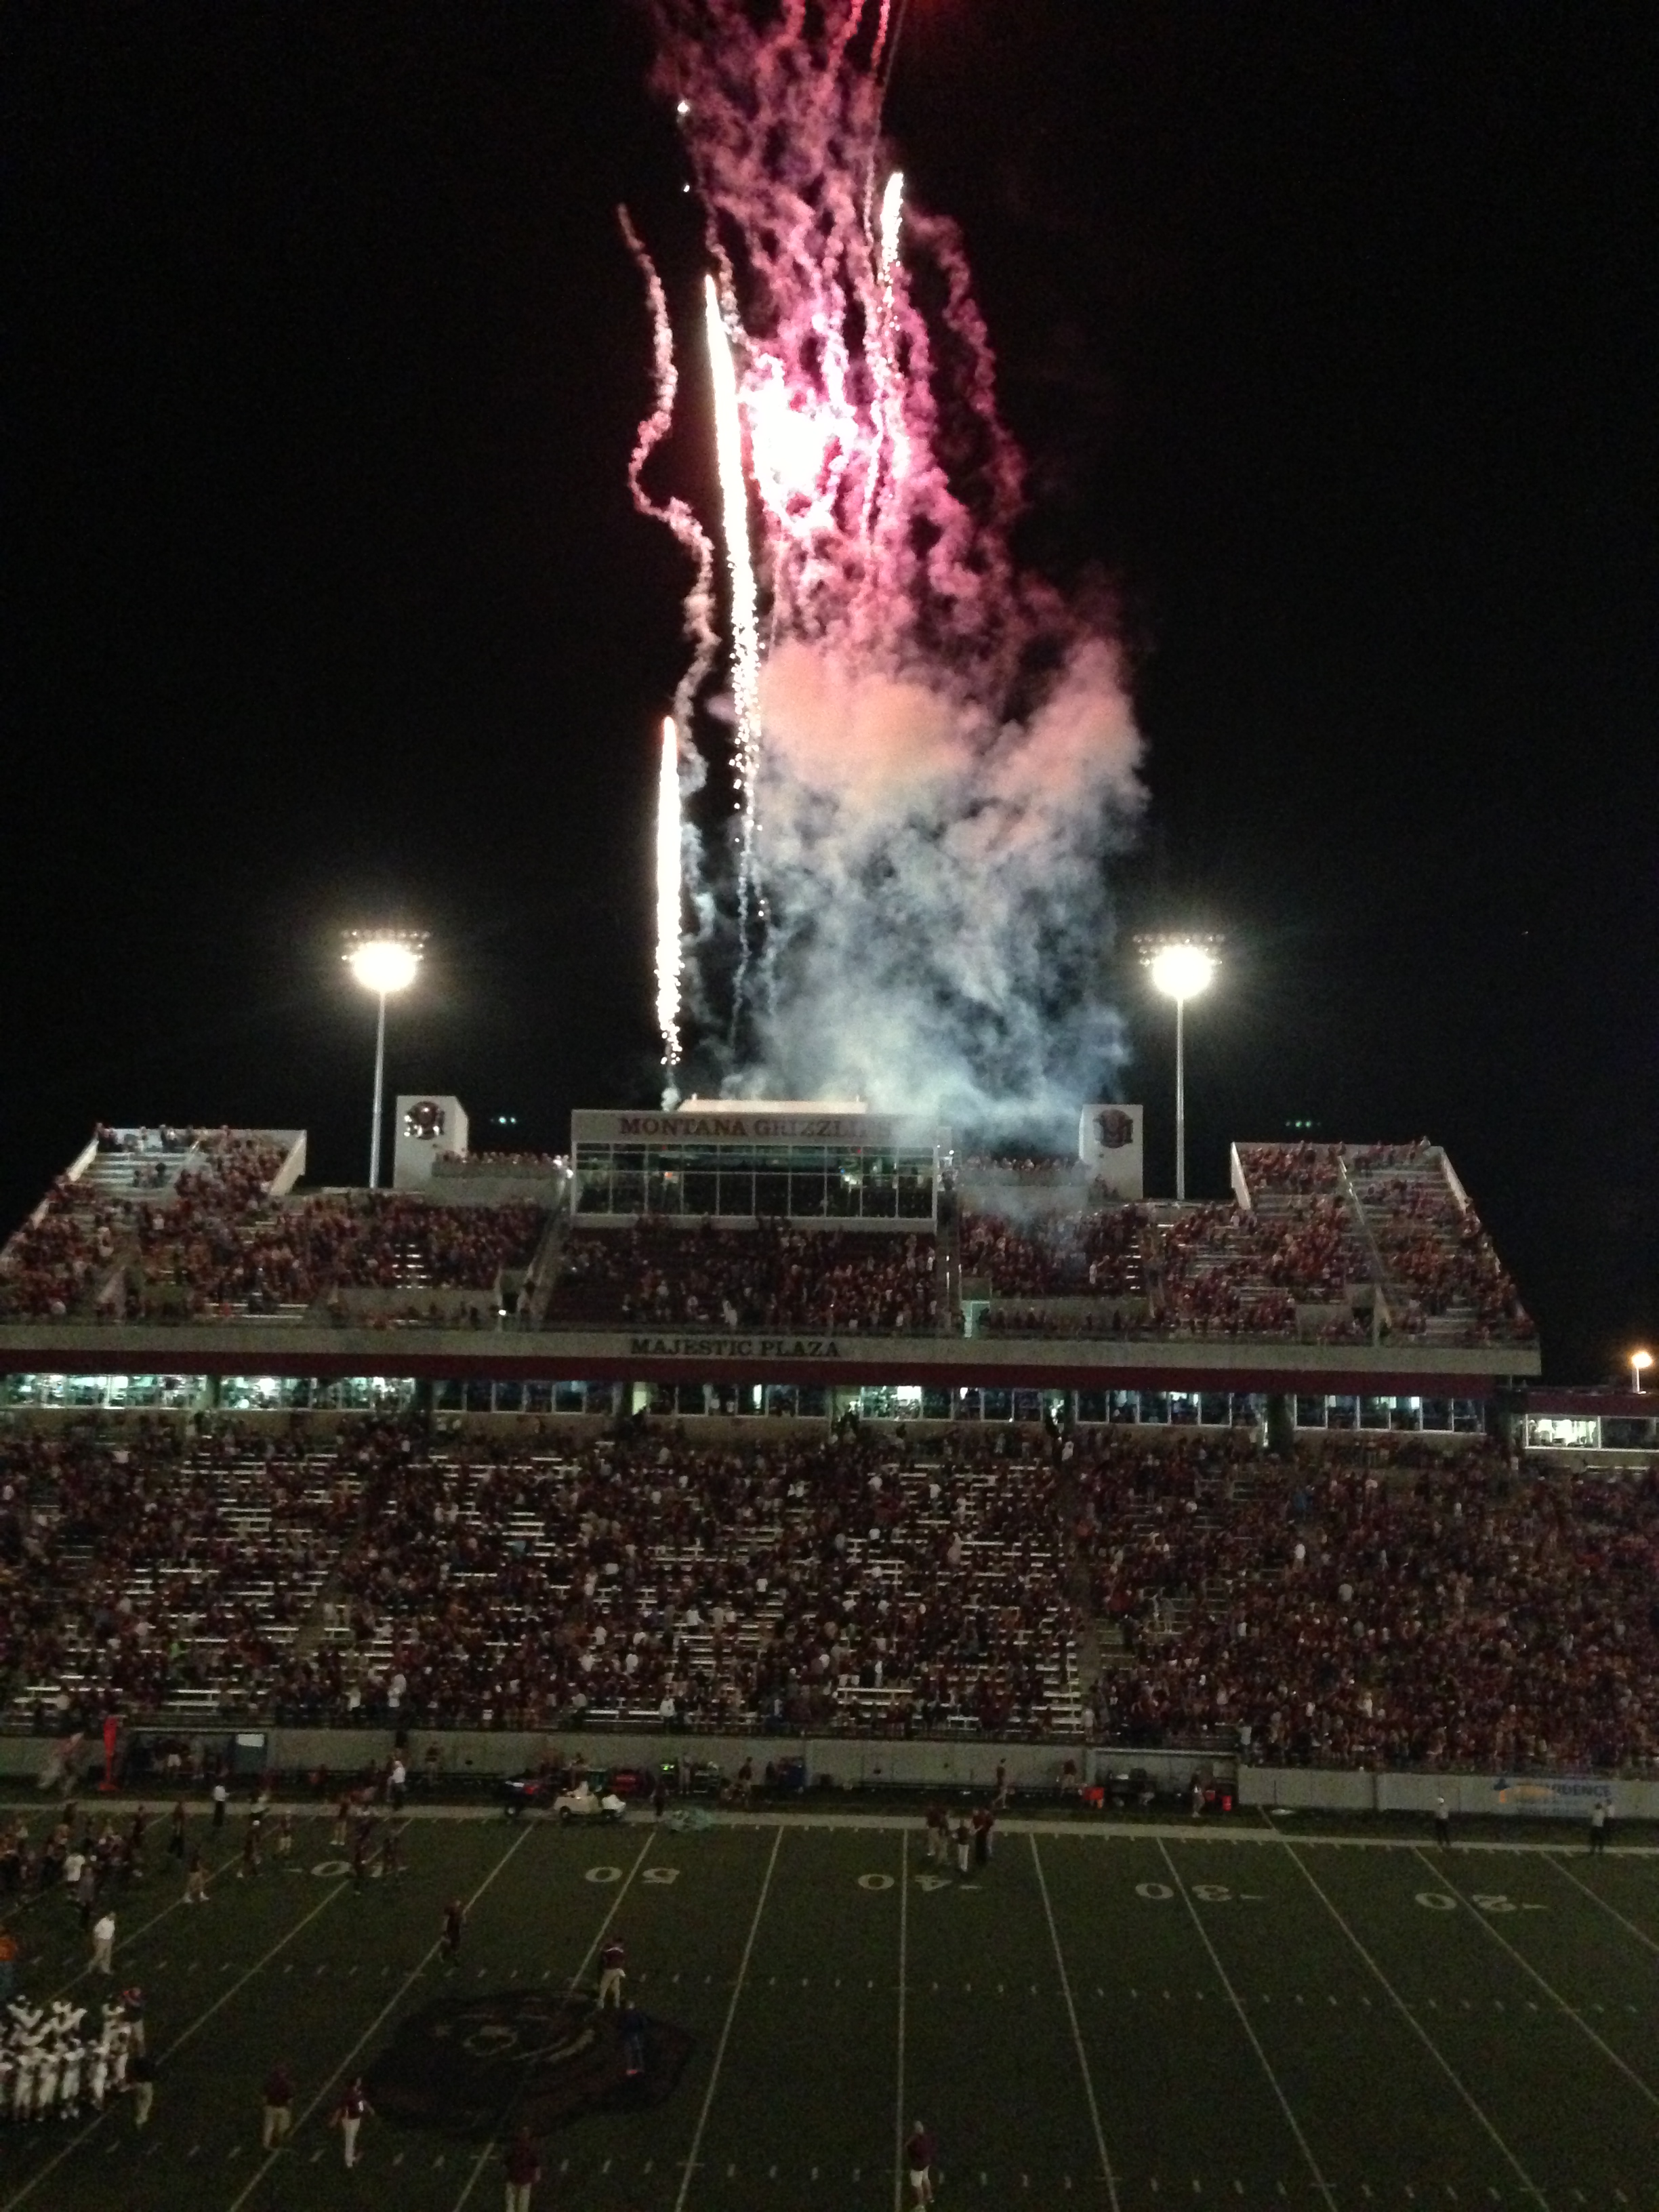 Fireworks lit up the sky after the Griz victory.